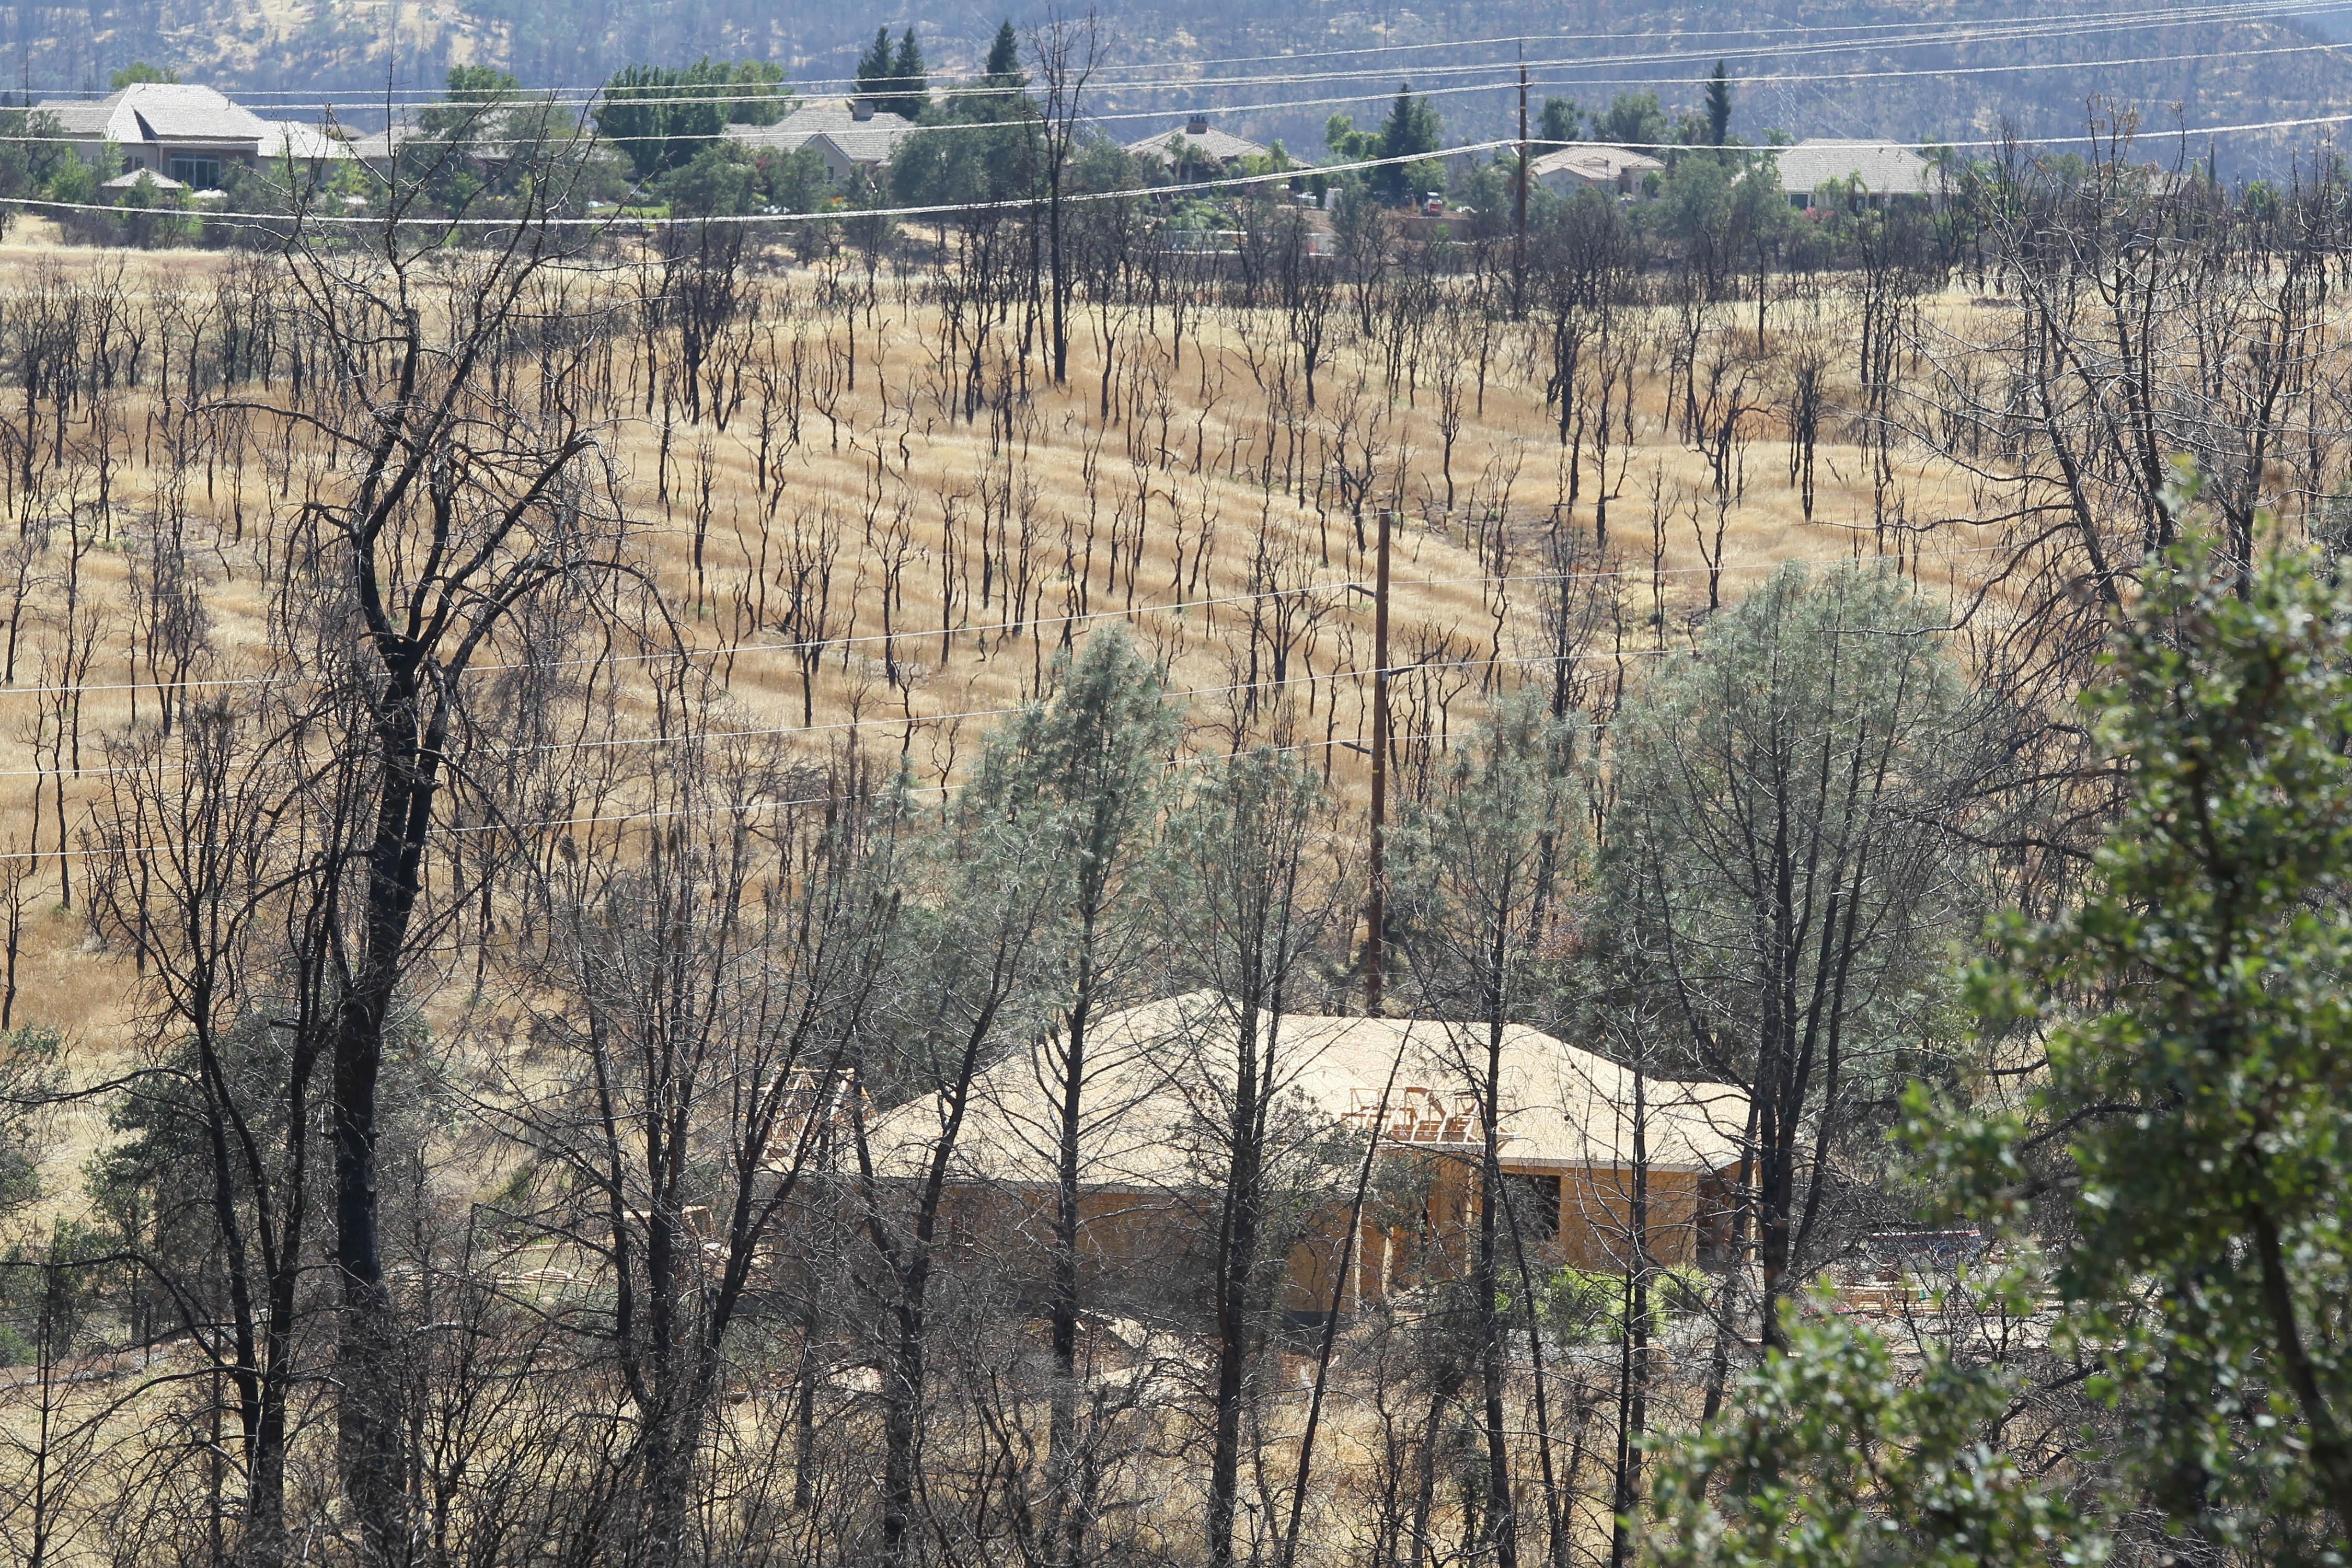 A section of woodland nearly a year after the Carr Fire burned the area near River Ridge Terrace subdivision in Redding.